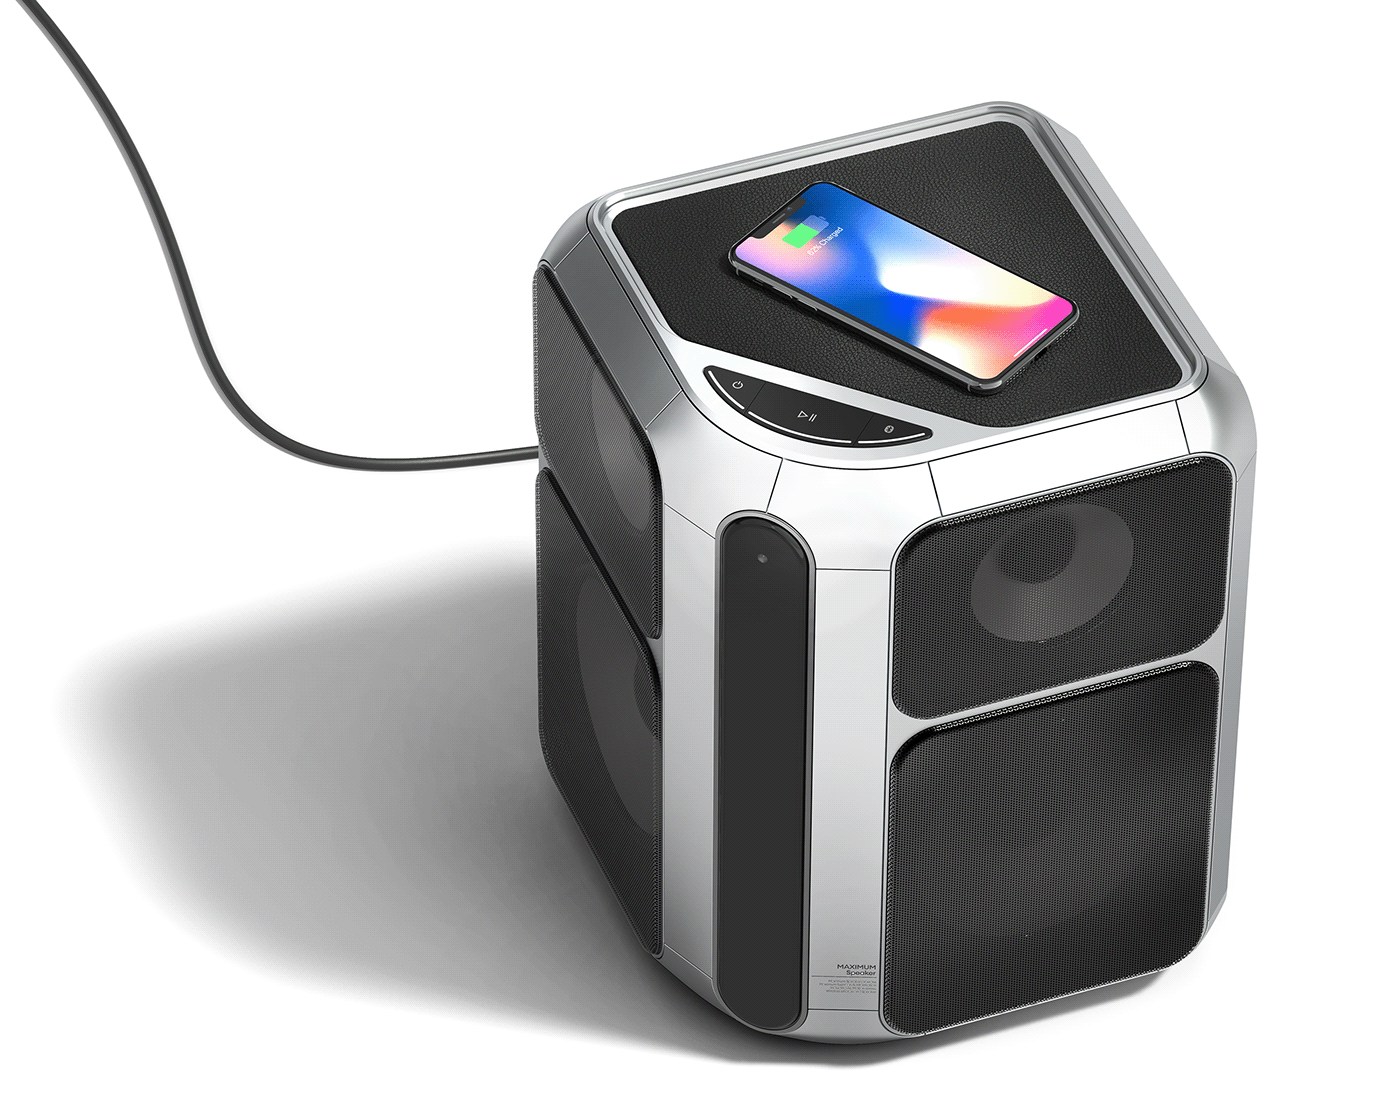 AI Speaker furniture industrial industrial design  product product design  speaker wireless Wireless Charger